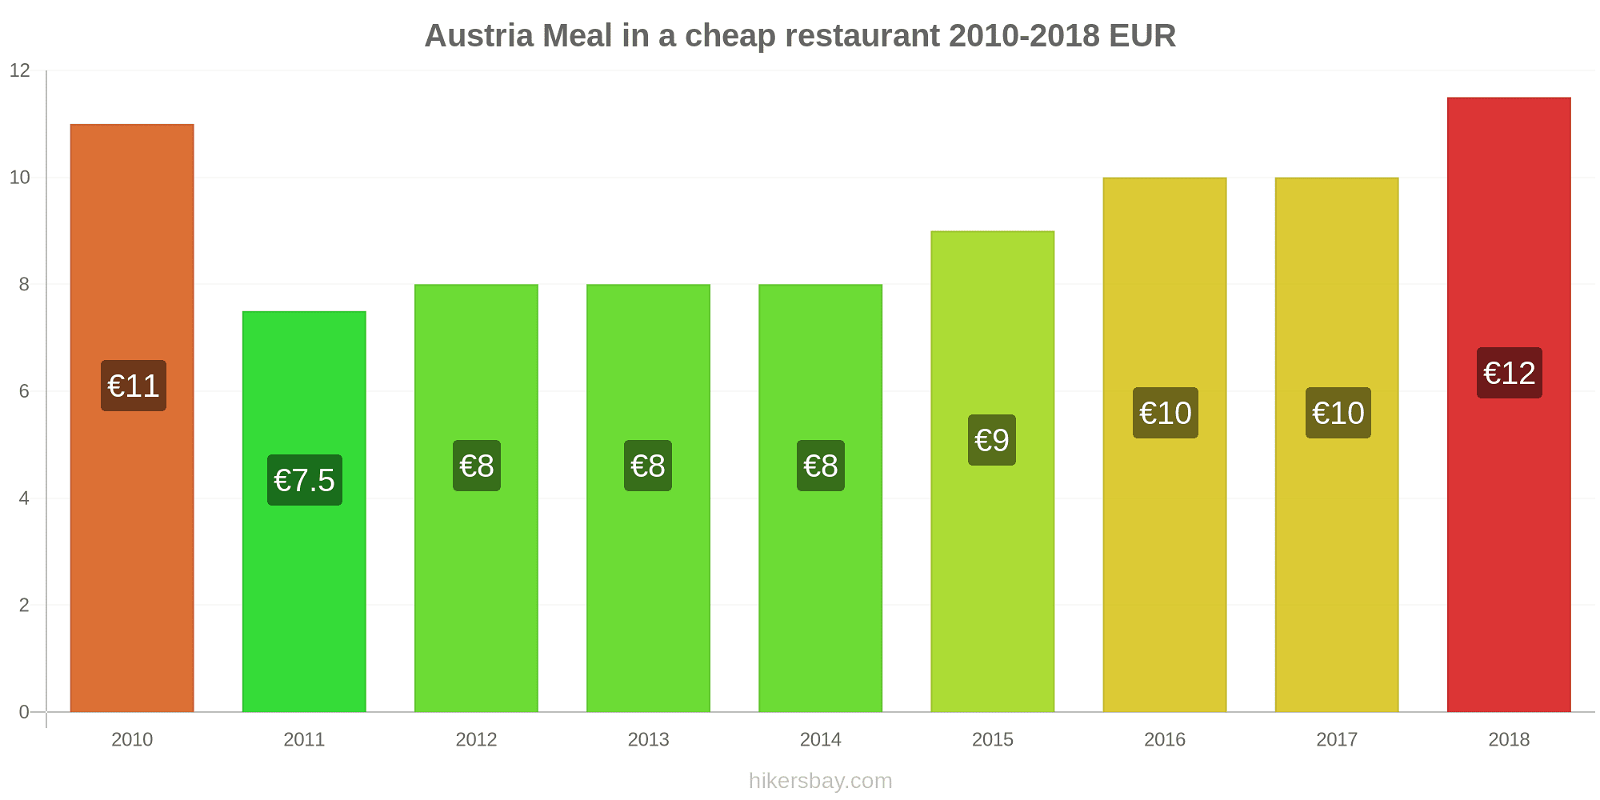 Austria price changes Meal in a cheap restaurant hikersbay.com